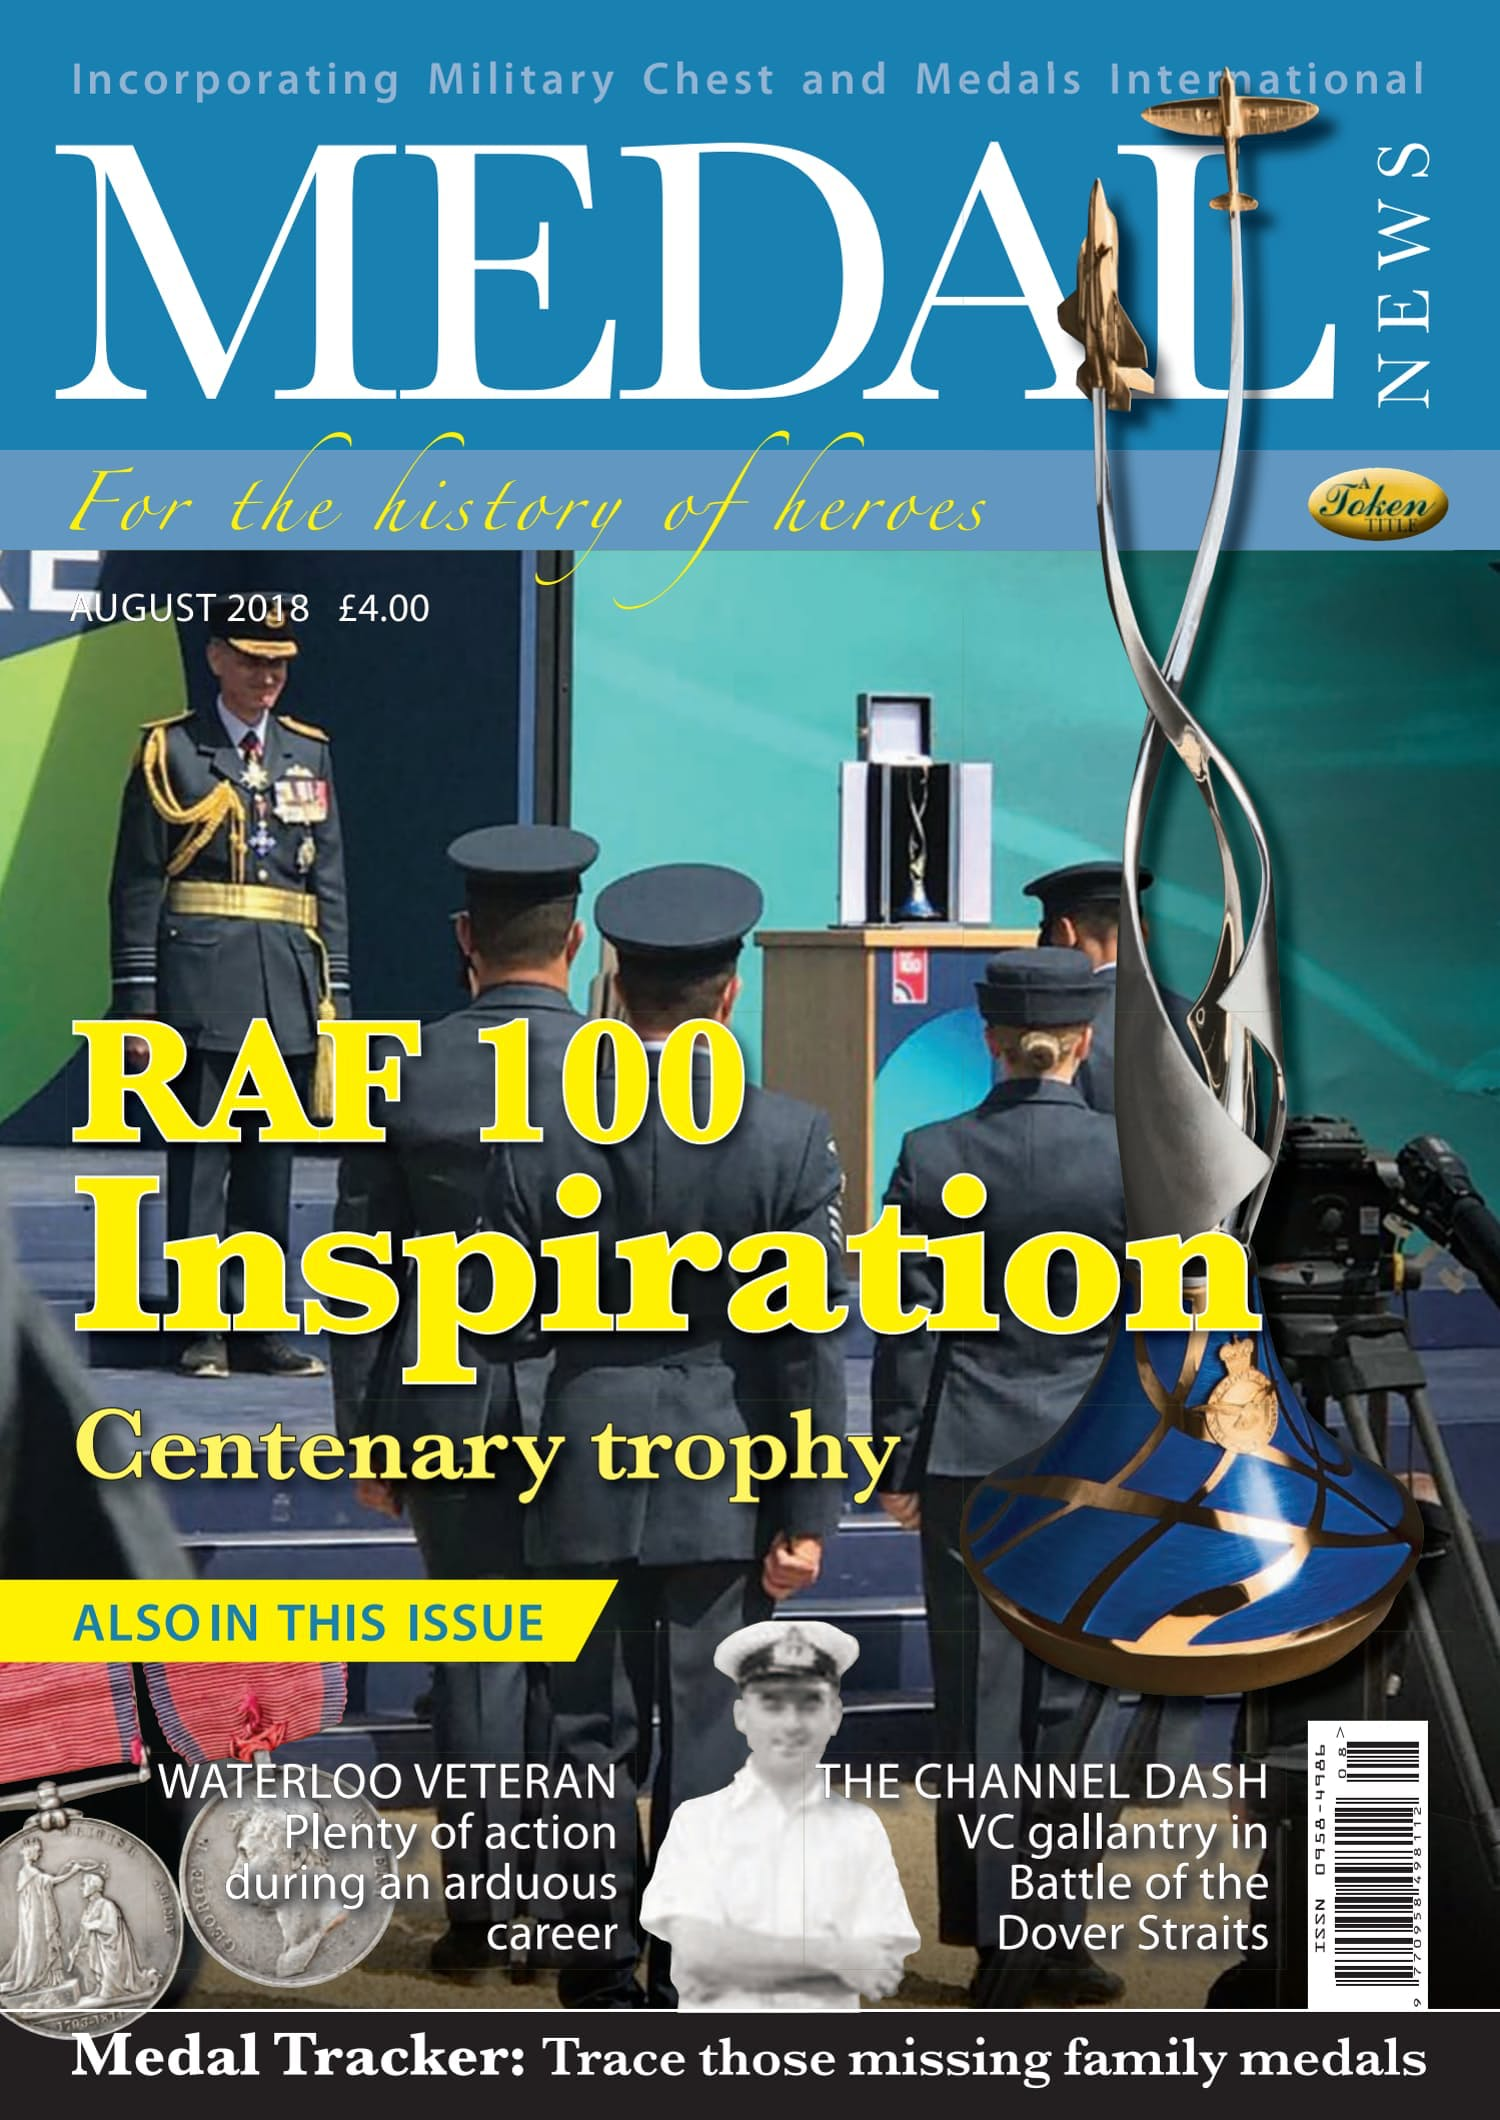 Front cover of 'RAF 100 Inspiration', Medal News August 2018, Volume 56, Number 7 by Token Publishing